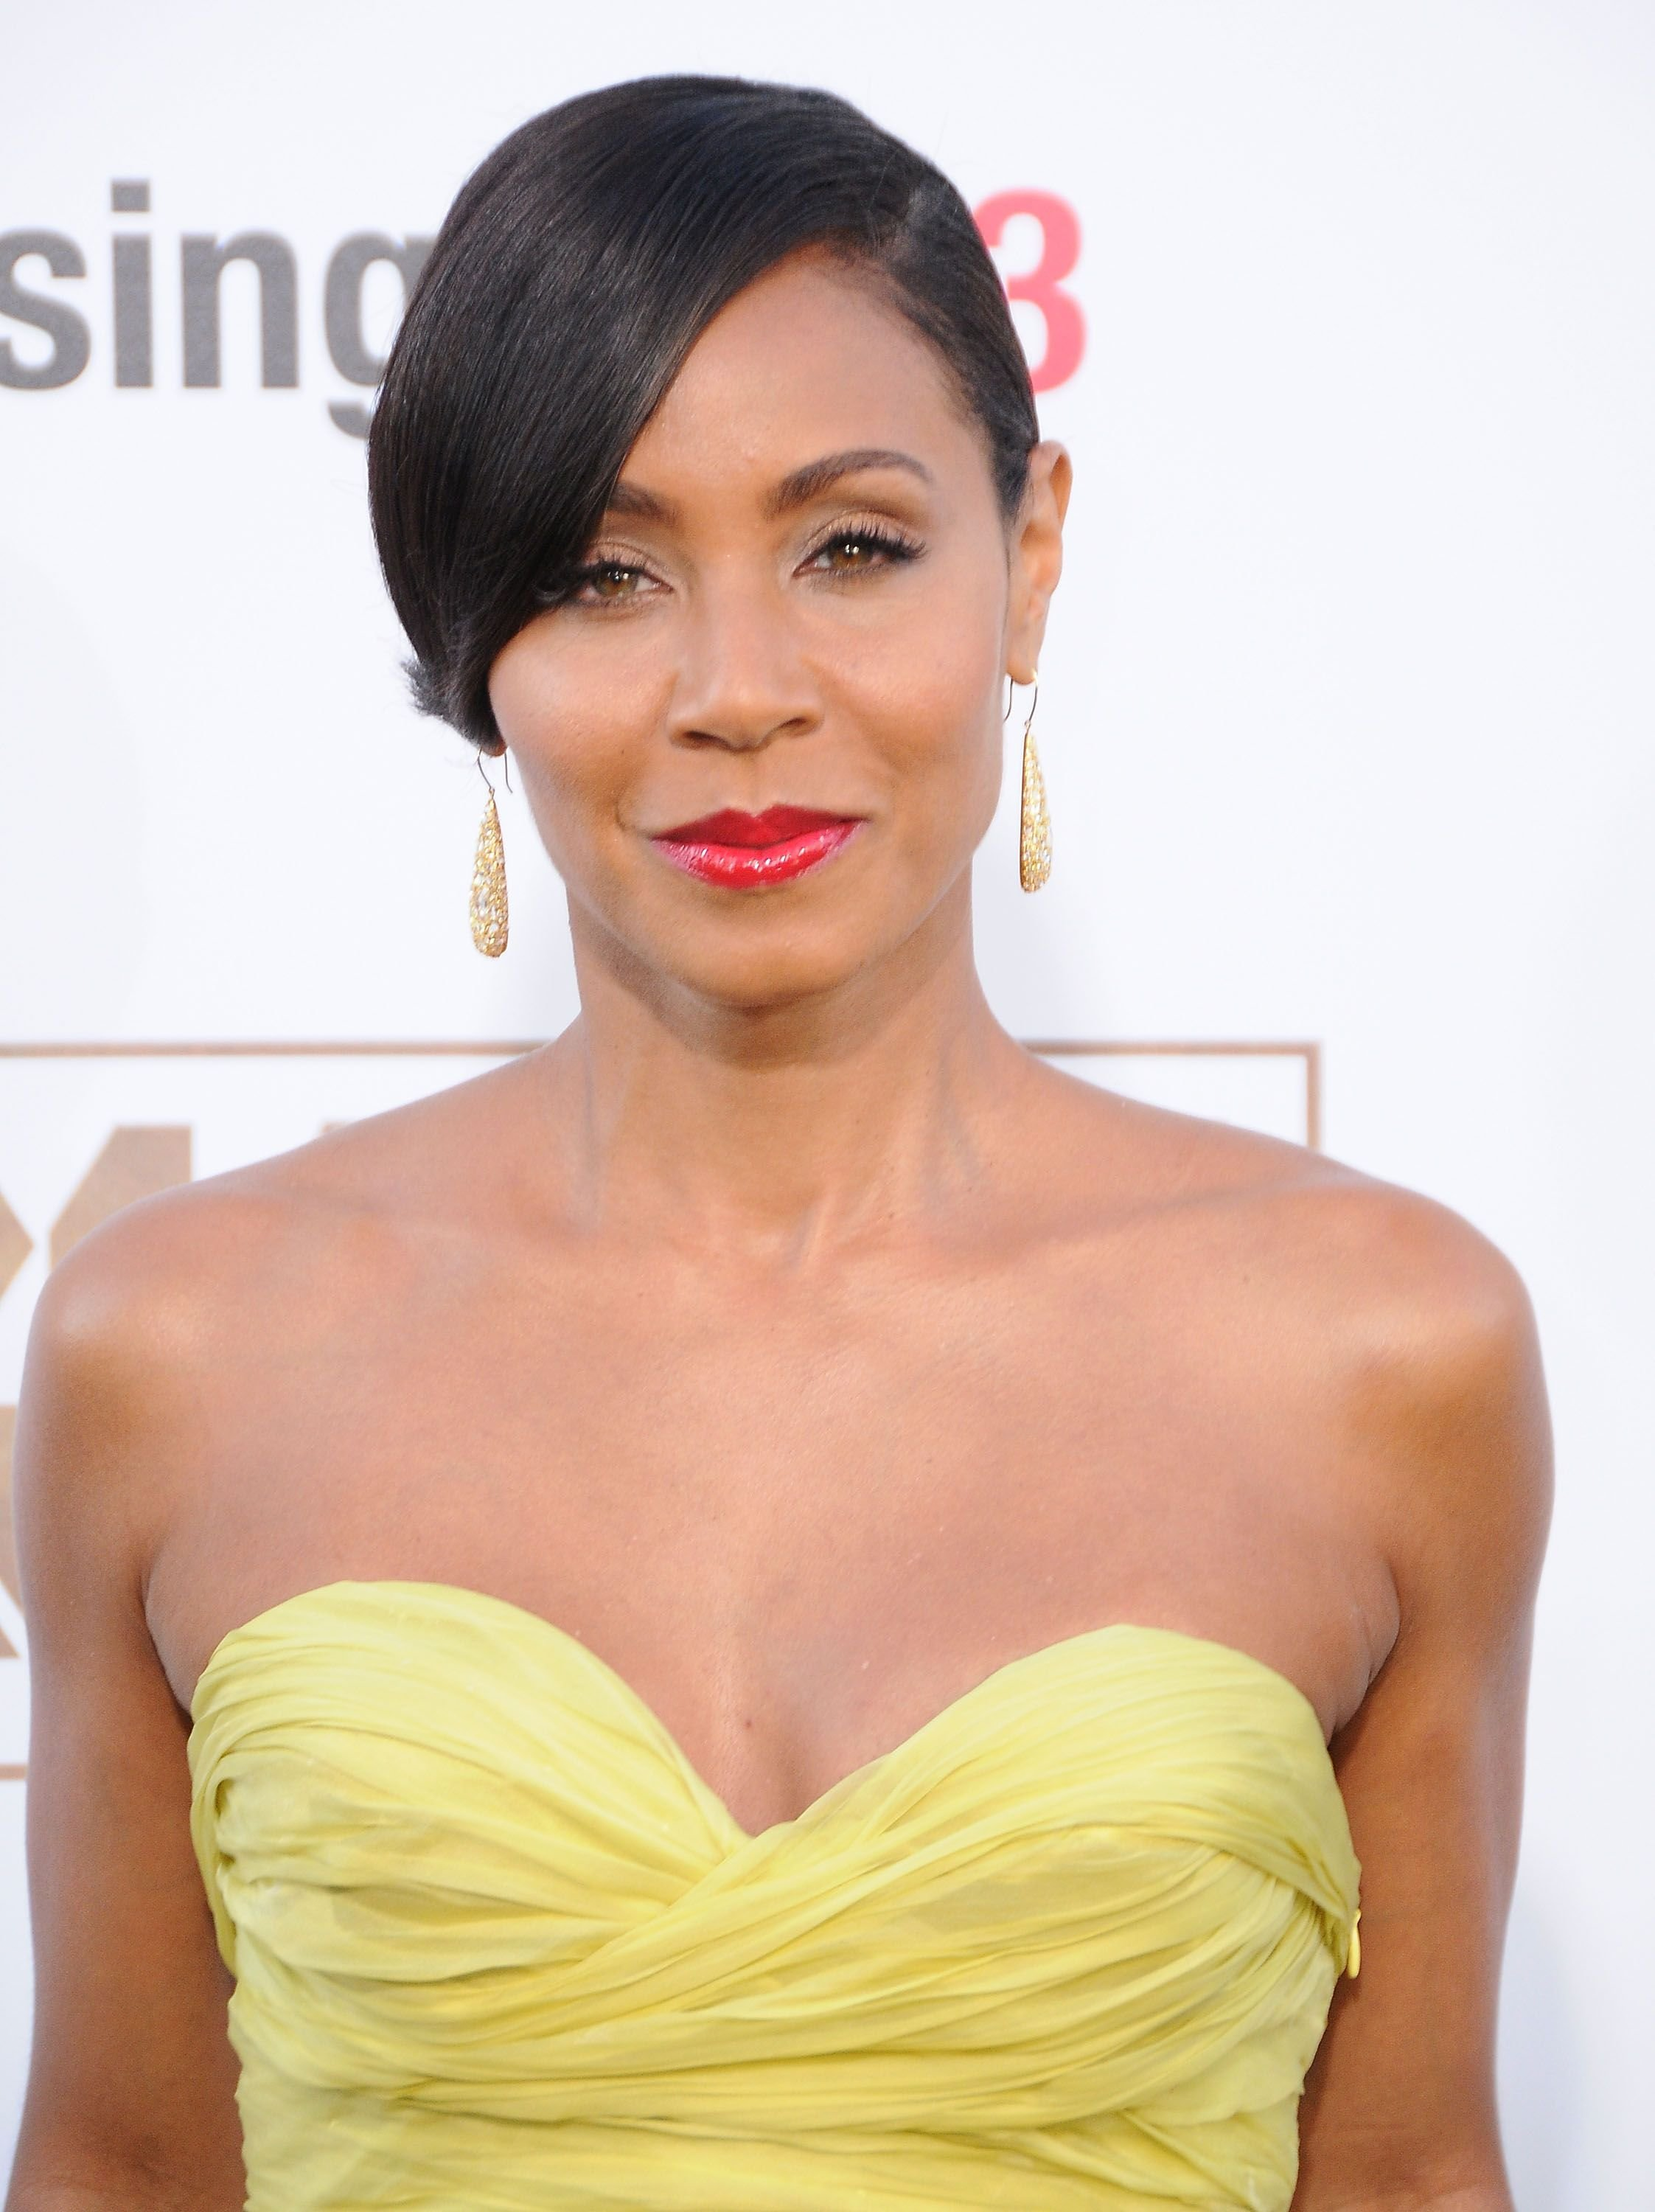 Jada Pinkett Smith arriving at the LAWorld Premiere of Warner Bros. Pictures 'Magic Mike XXL'  in Hollywood on June 25, 2015.   Photo: Getty Images